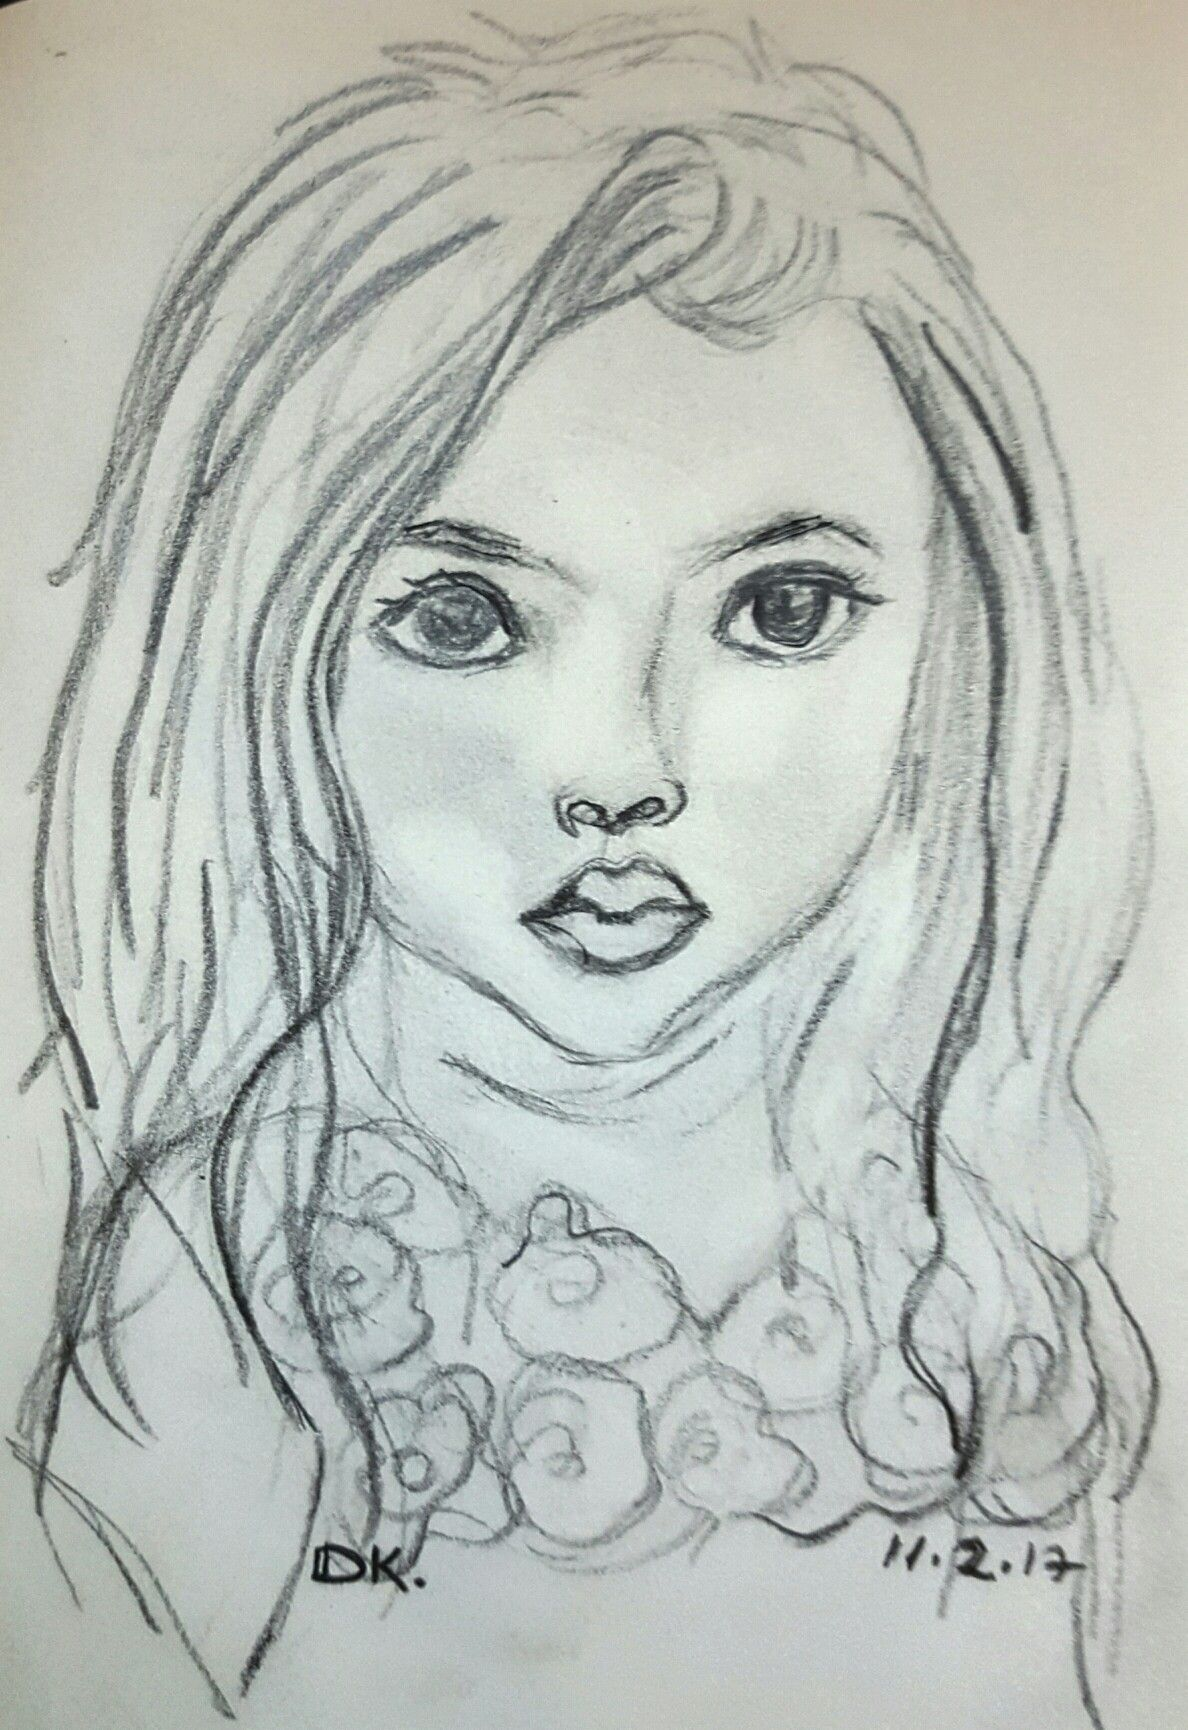 Pencil sketch by dorit kenyagin 3 100 good morning challenge